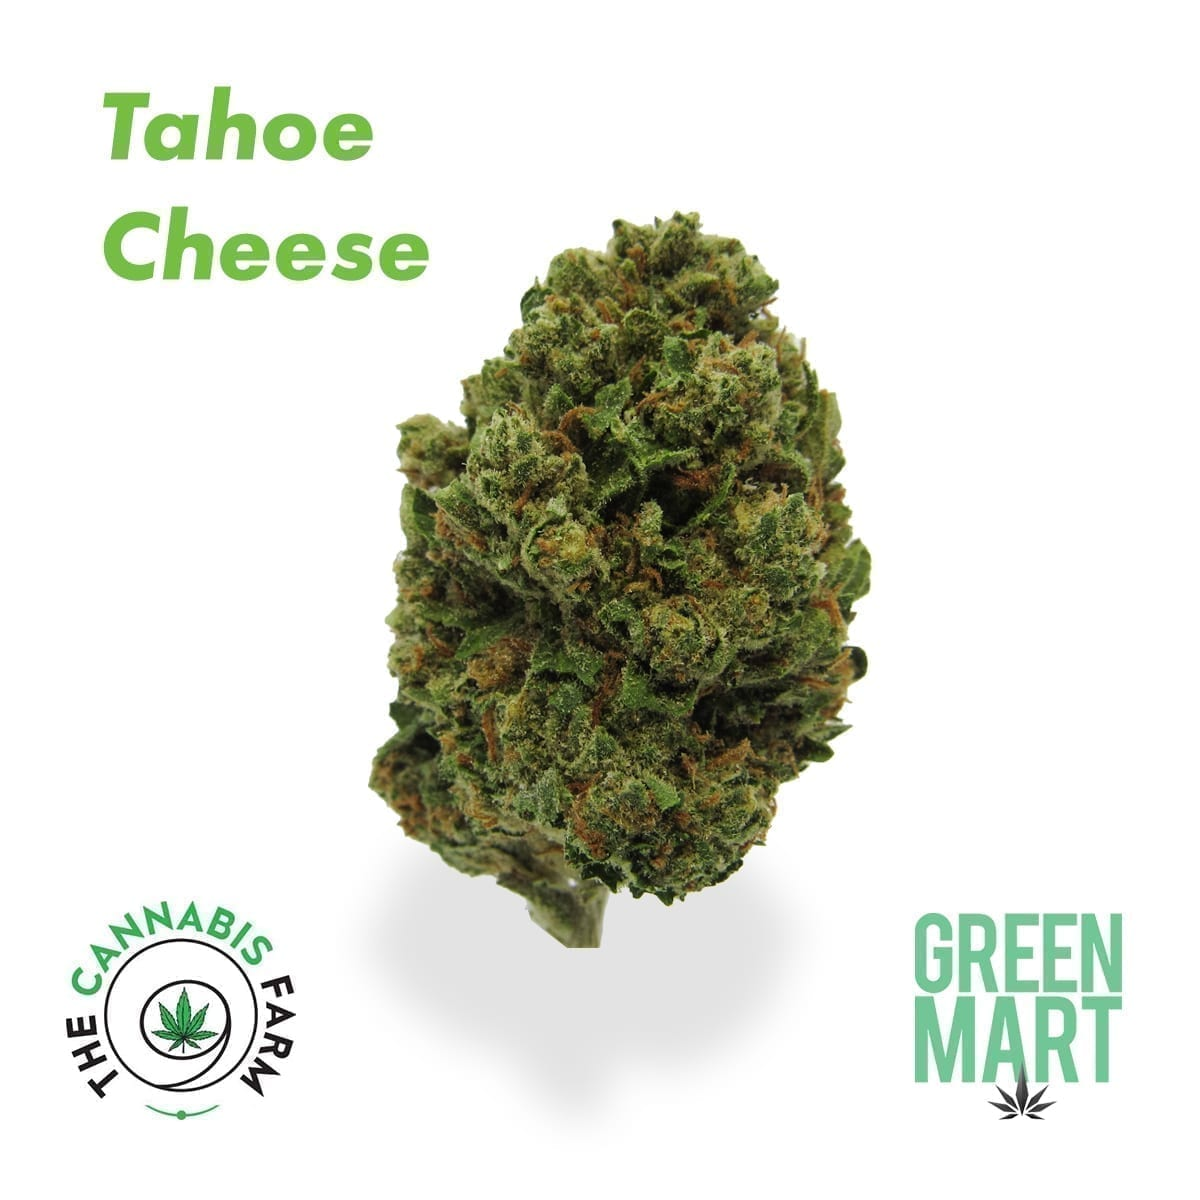 Tahoe Cheese